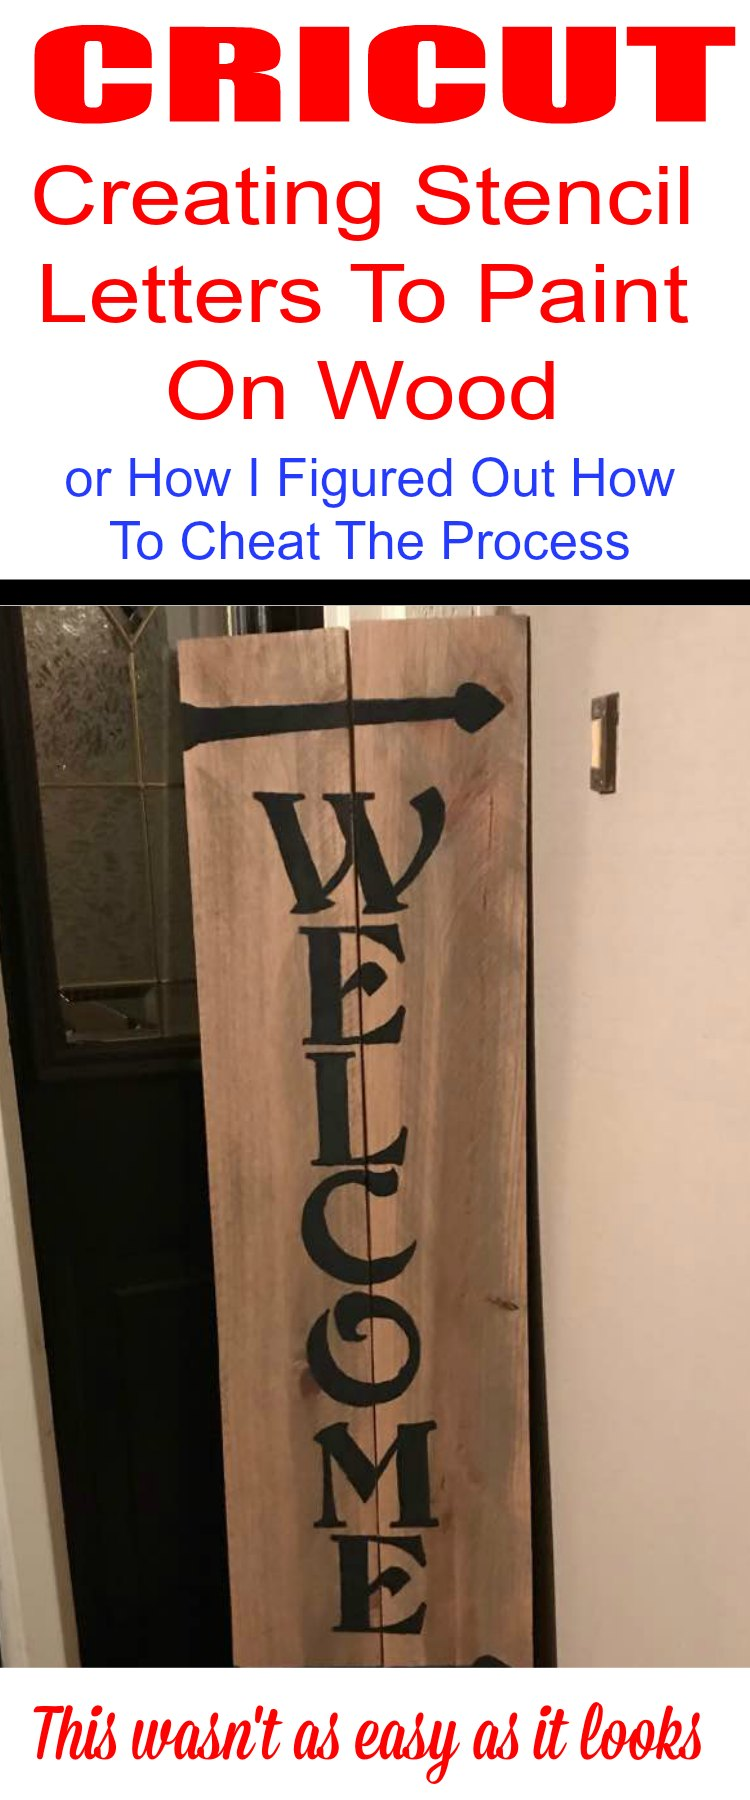 Creating Stencil Letters To Paint Wood Cricut Smart Cutting